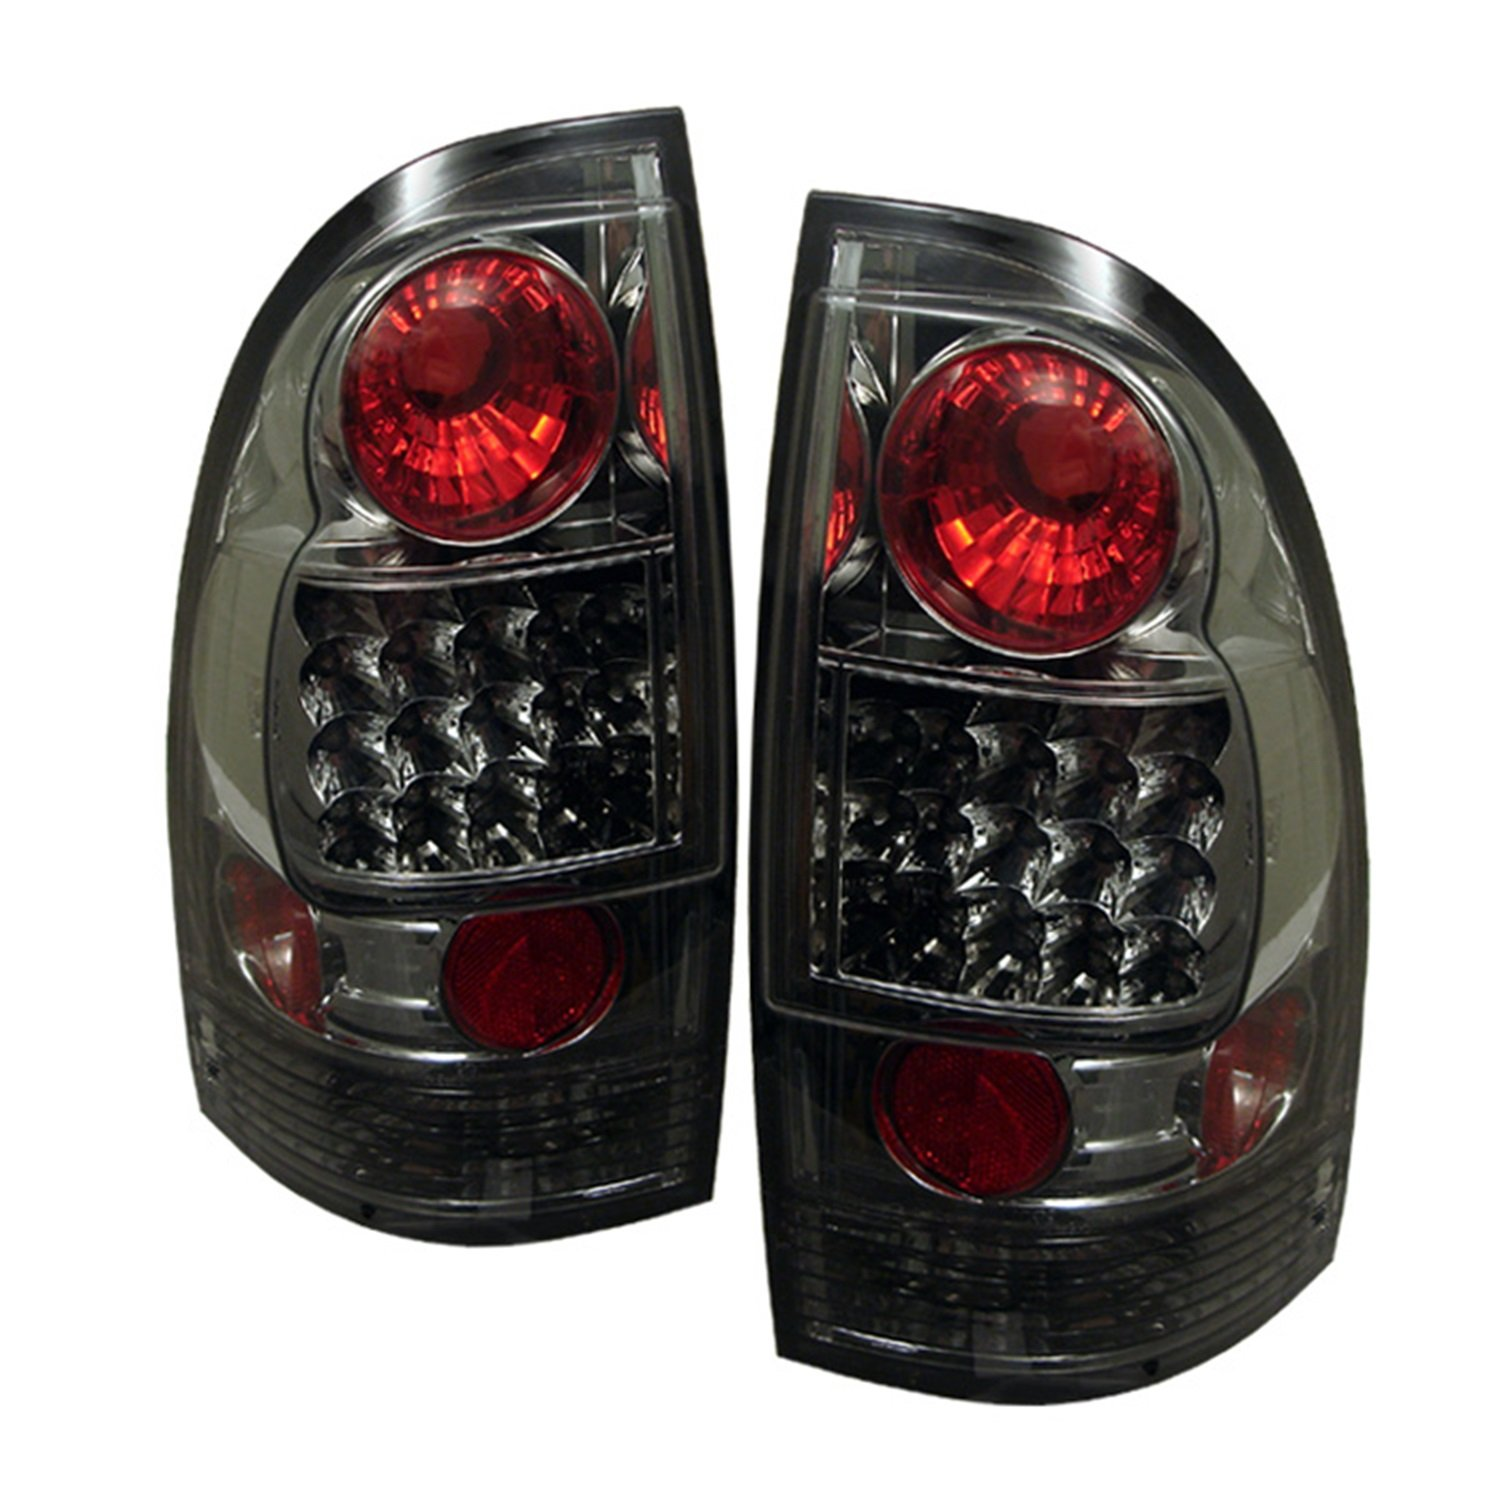 71r0NMadU3L._SL1500_ amazon com spyder auto alt yd tt05 led sm smoke led tail light Toyota Tacoma Schematics at fashall.co